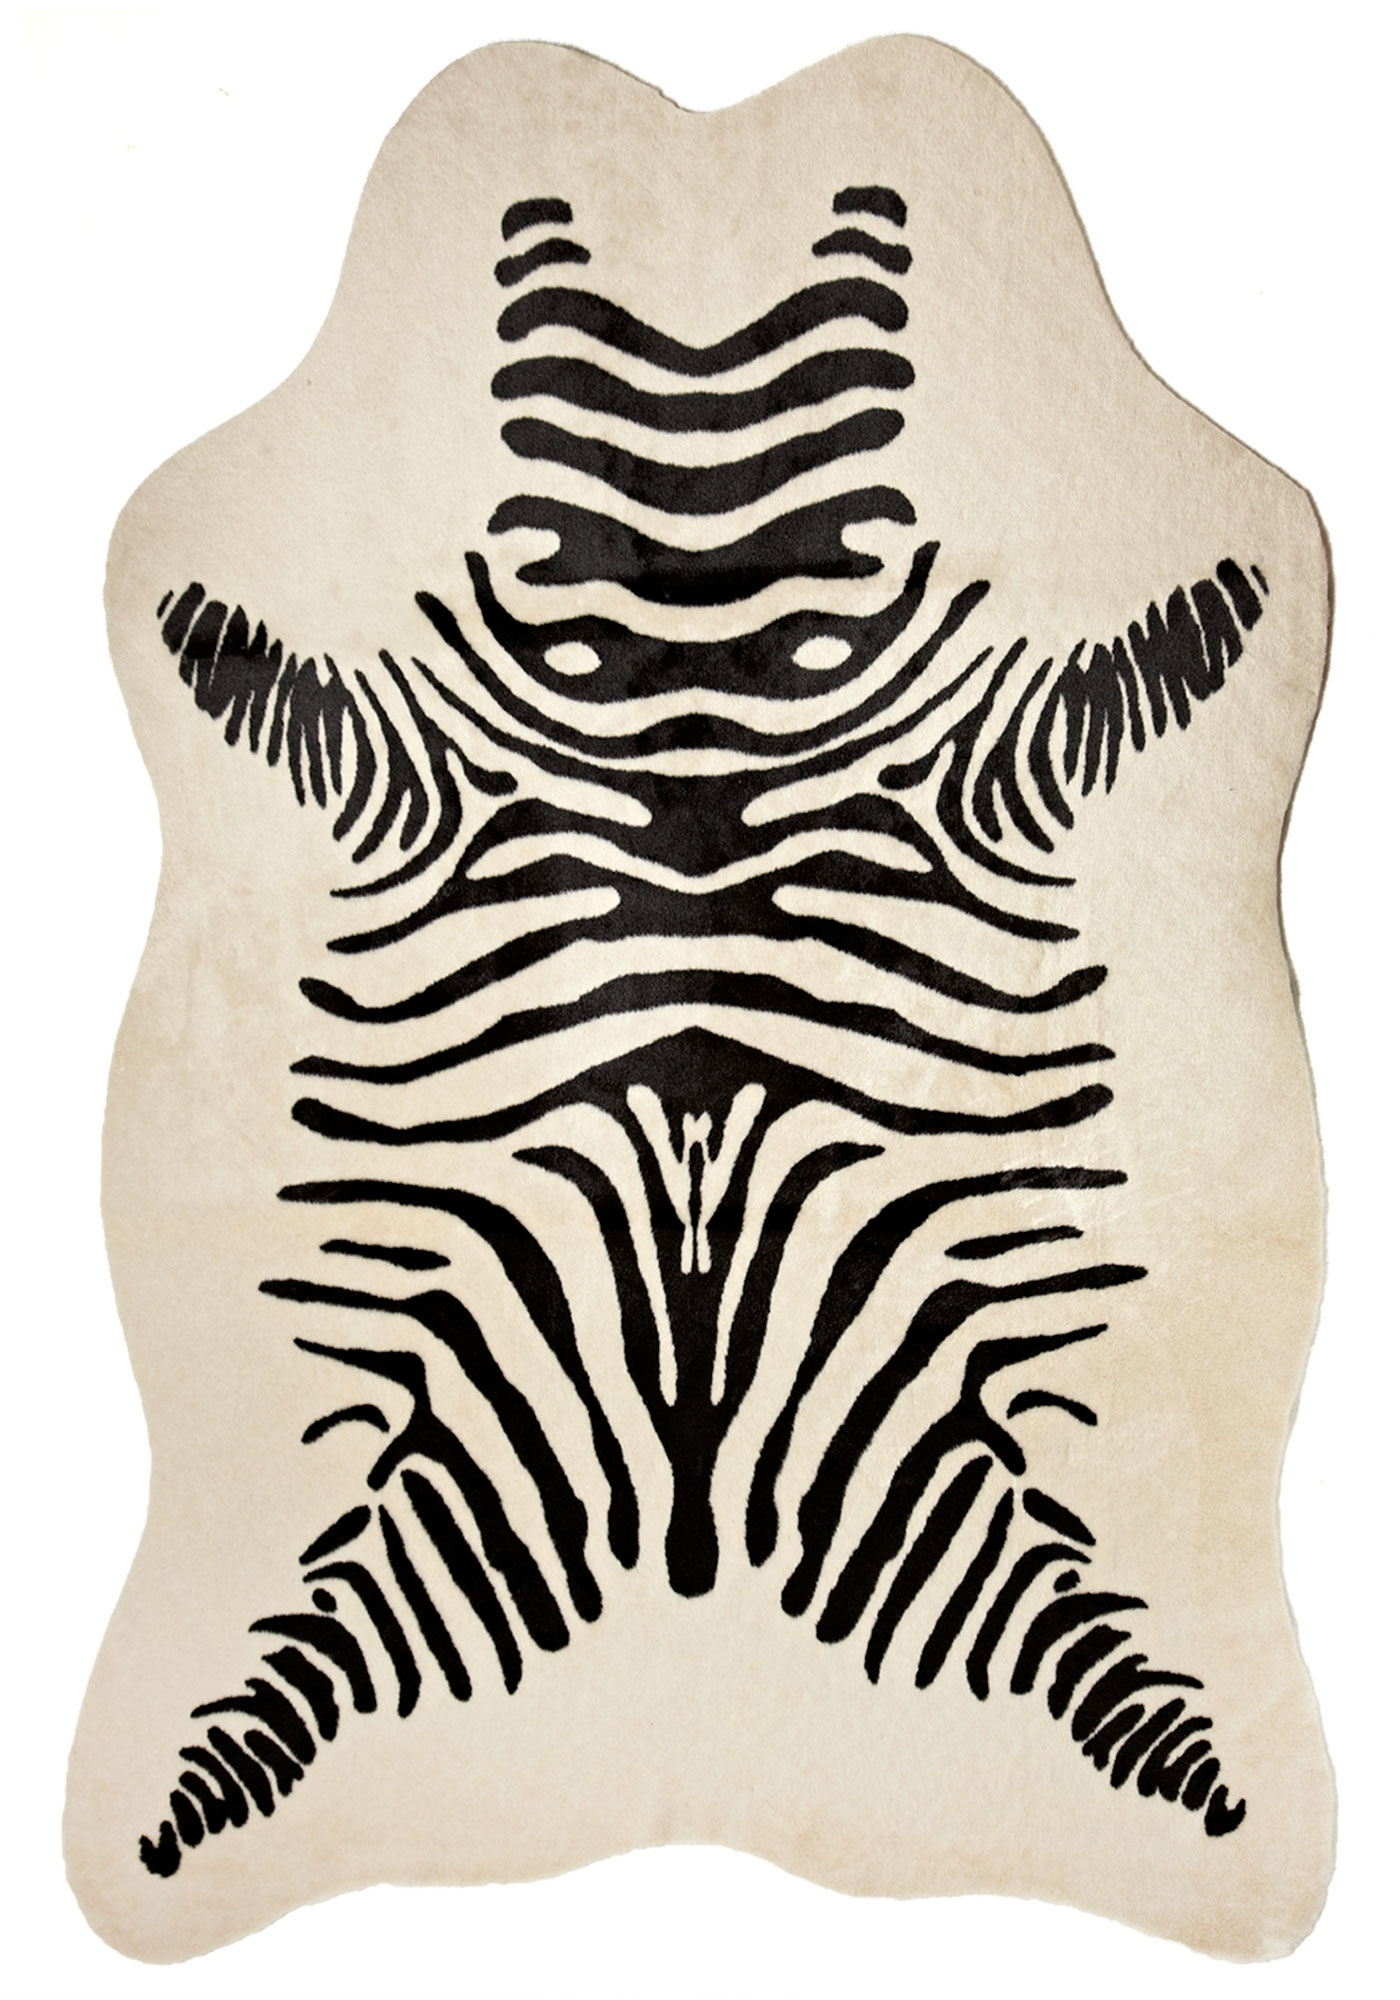 Faux Zebra Skin Rug Ideas Home Furniture Ideas With Zebra Skin Rugs (Image 4 of 15)